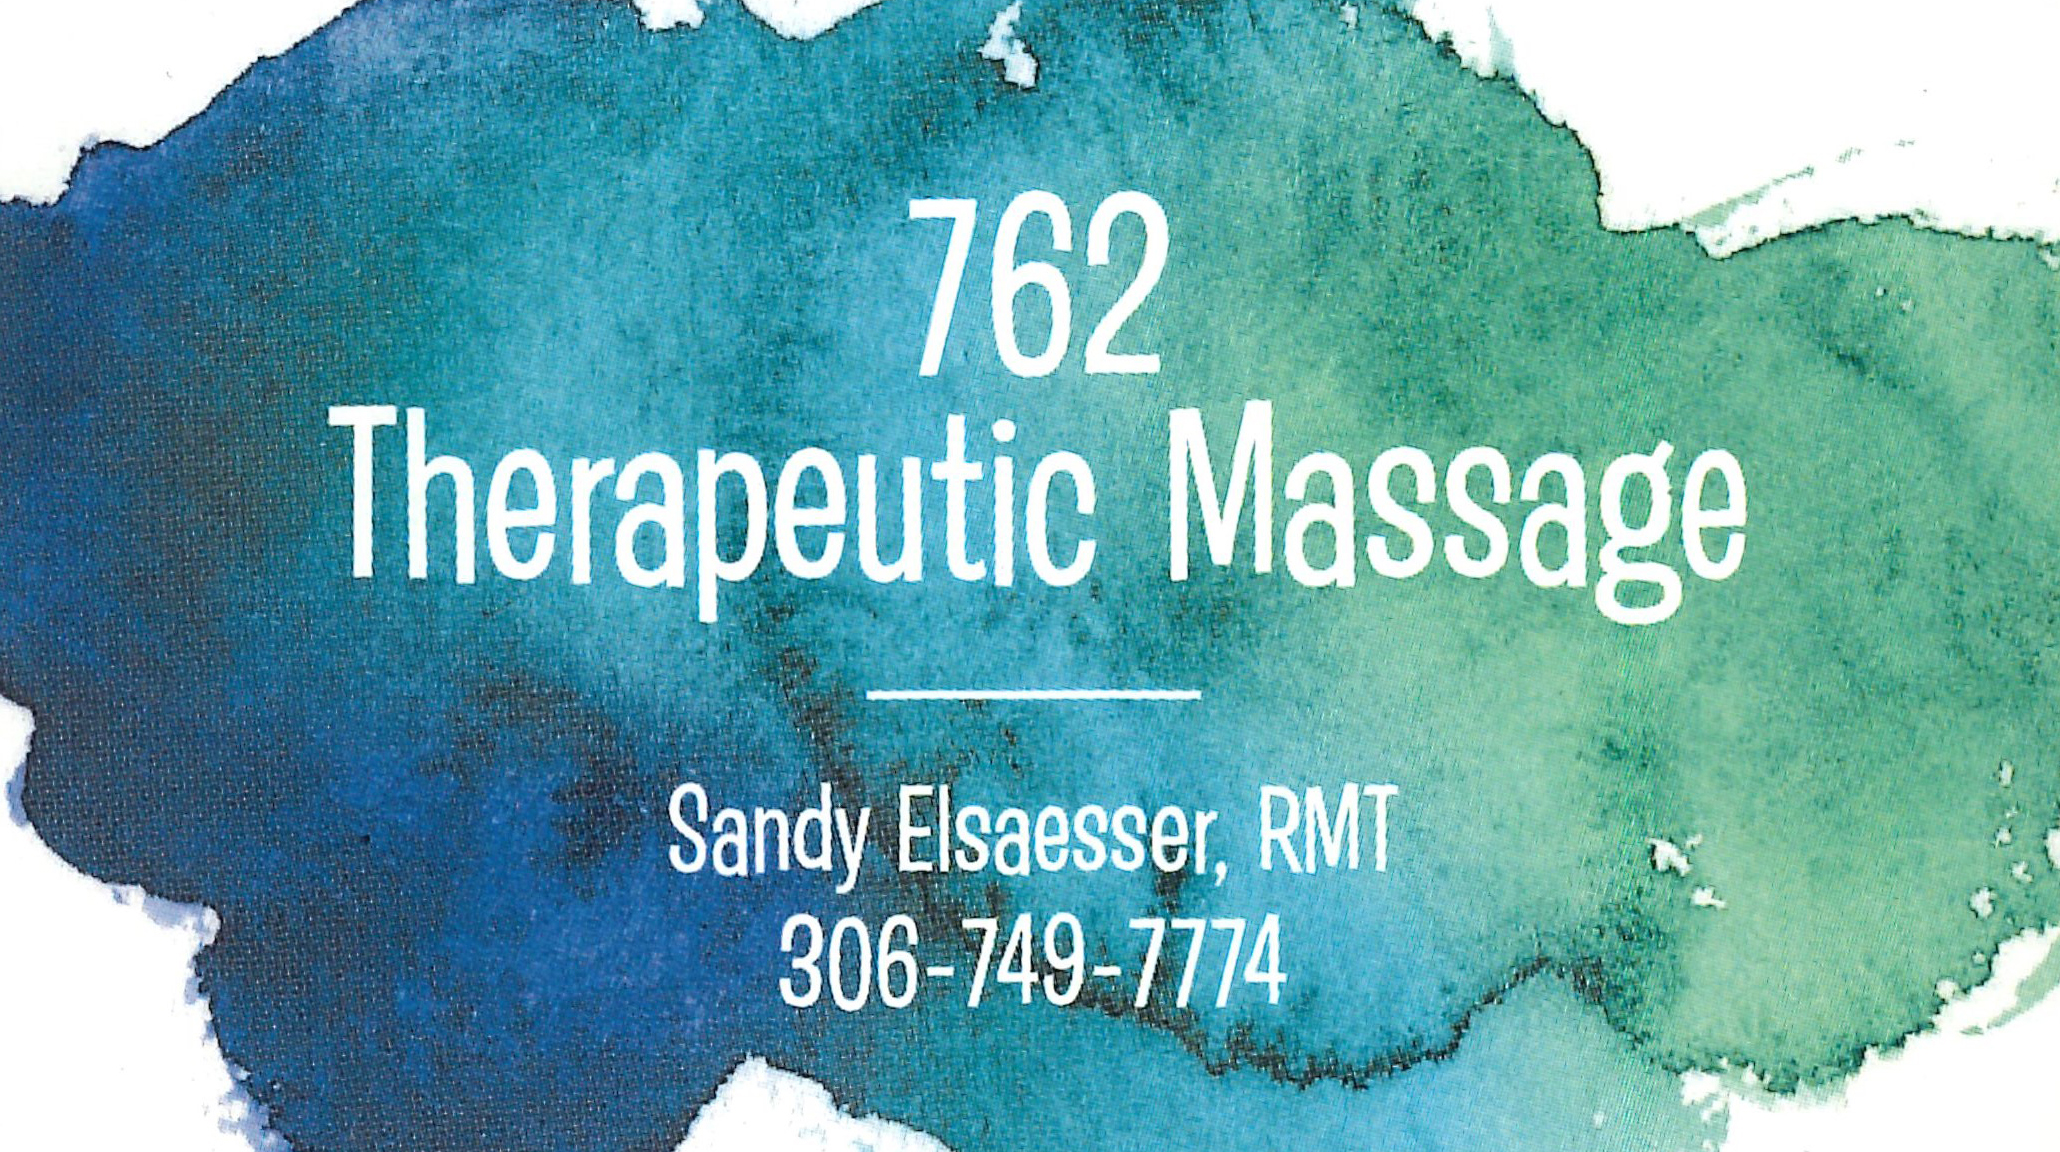 762 Theraputic Massage